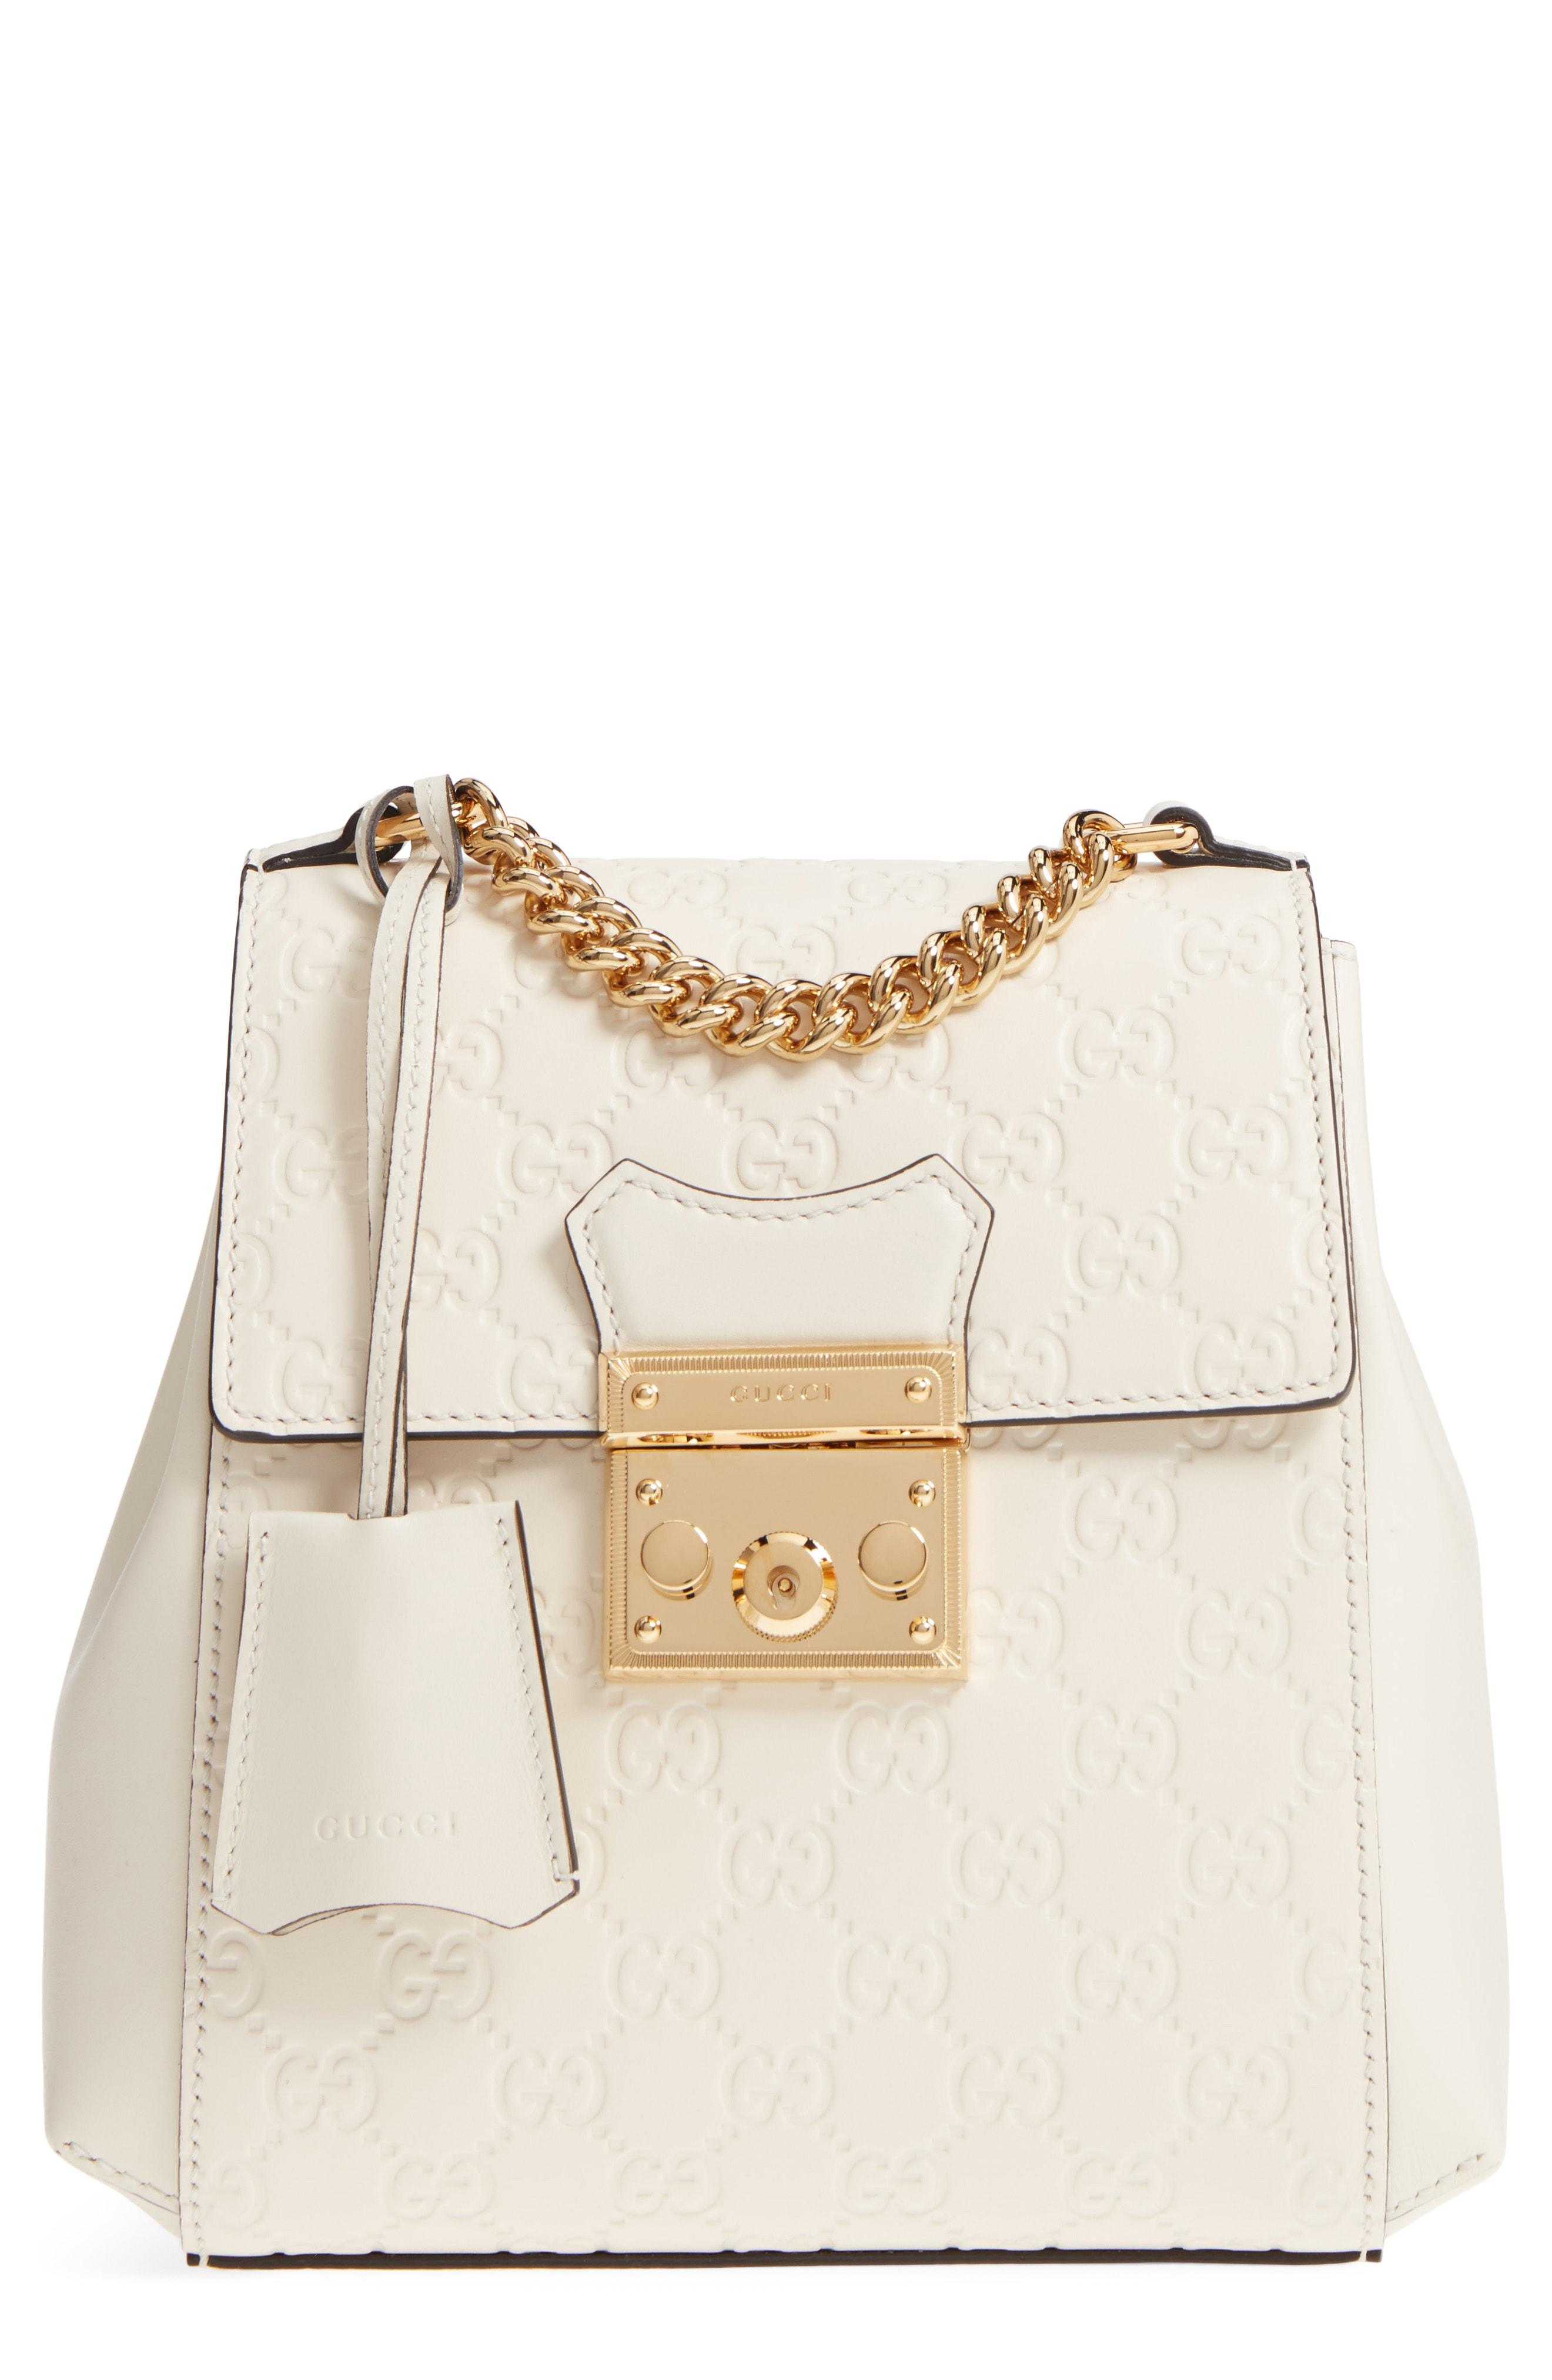 e356d7cef73 Gucci Gg Supreme Leather Padlock Backpack in White - Lyst